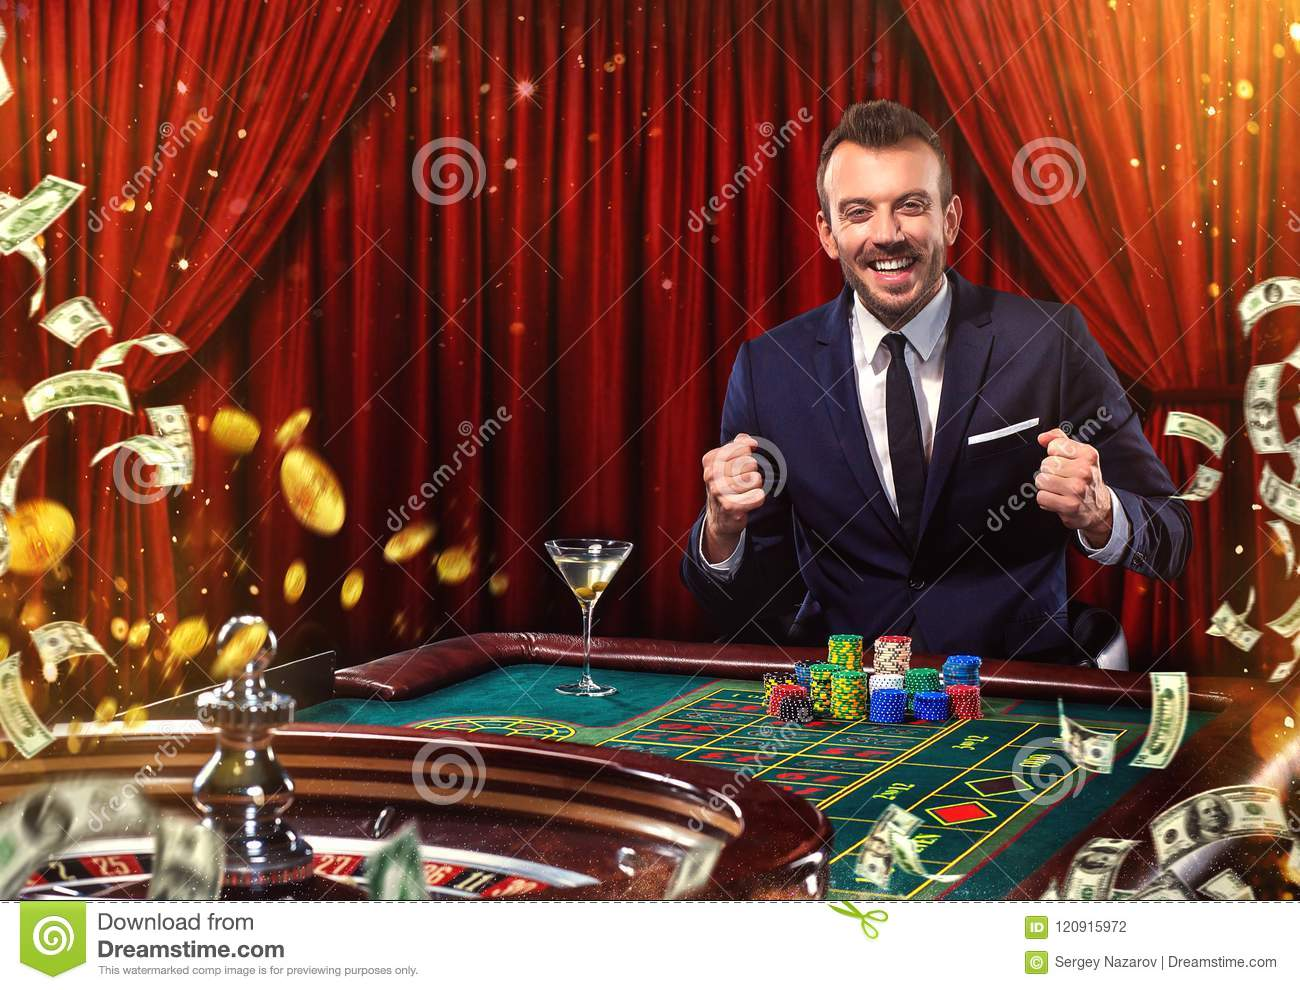 Collage of casino images with man play poker roulette at the table. Young man in suit playing in the casino. Gambling.